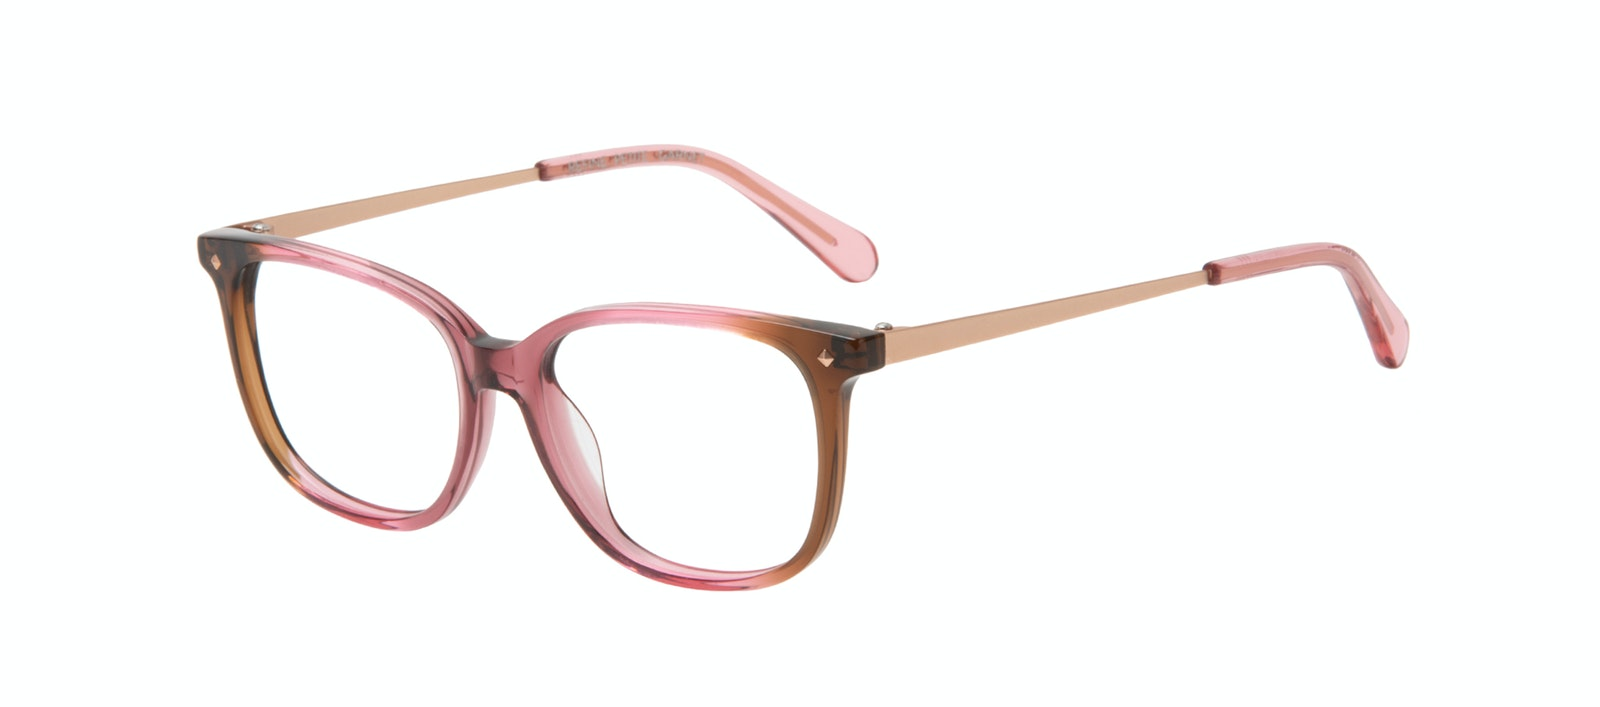 Affordable Fashion Glasses Square Eyeglasses Women Refine Petite Garnet Tilt